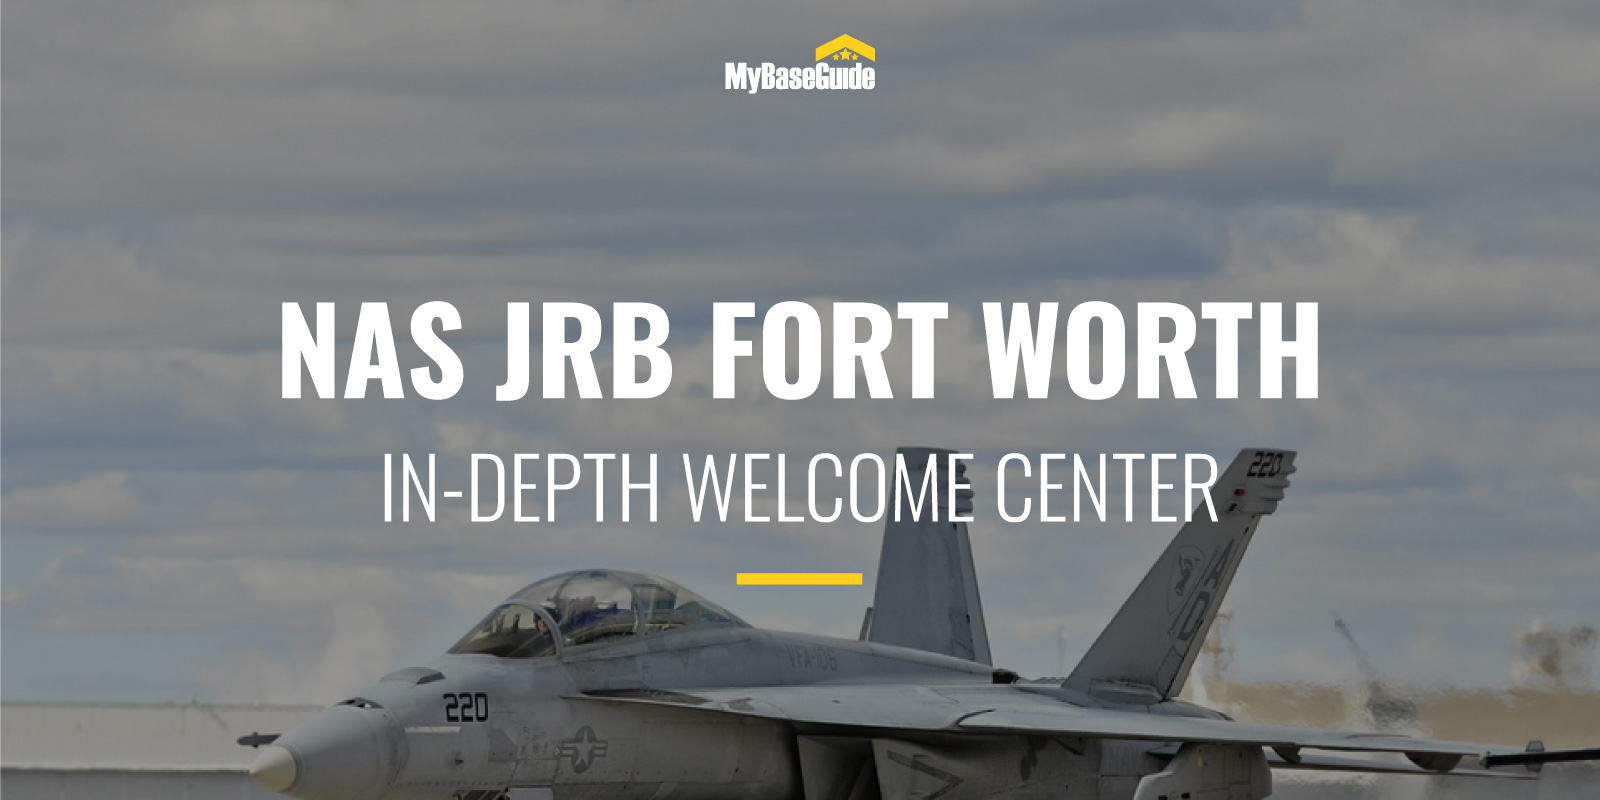 NAS JRB Fort Worth: In-Depth Welcome Center